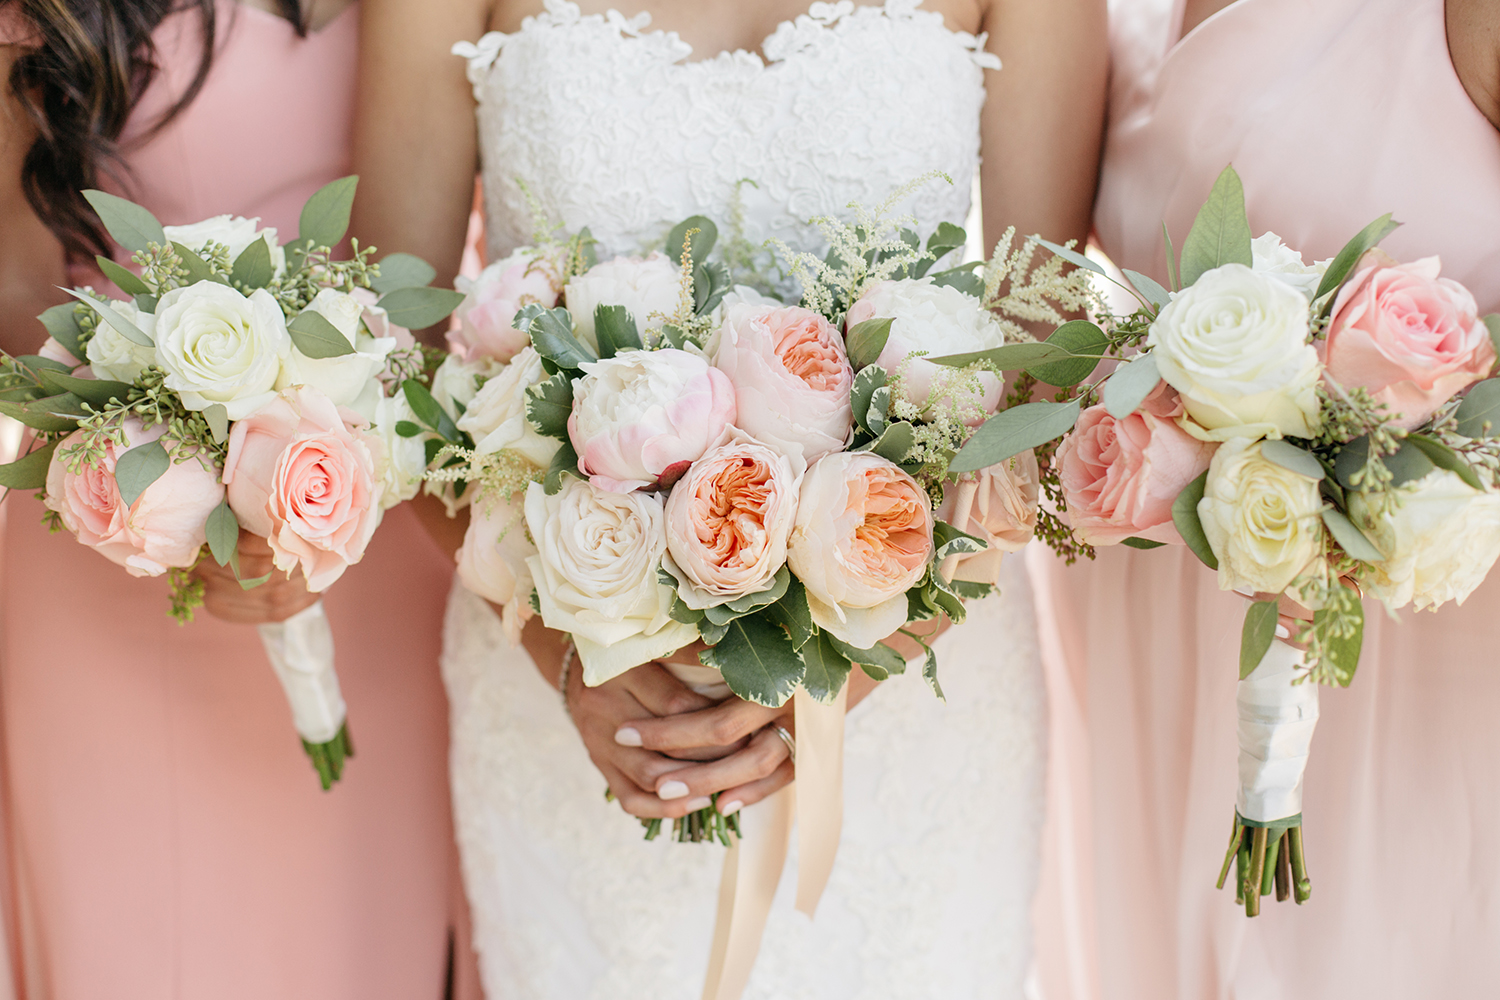 Bridedmaids and bride blush rose floral bouquets. Mission Santa Clara wedding.